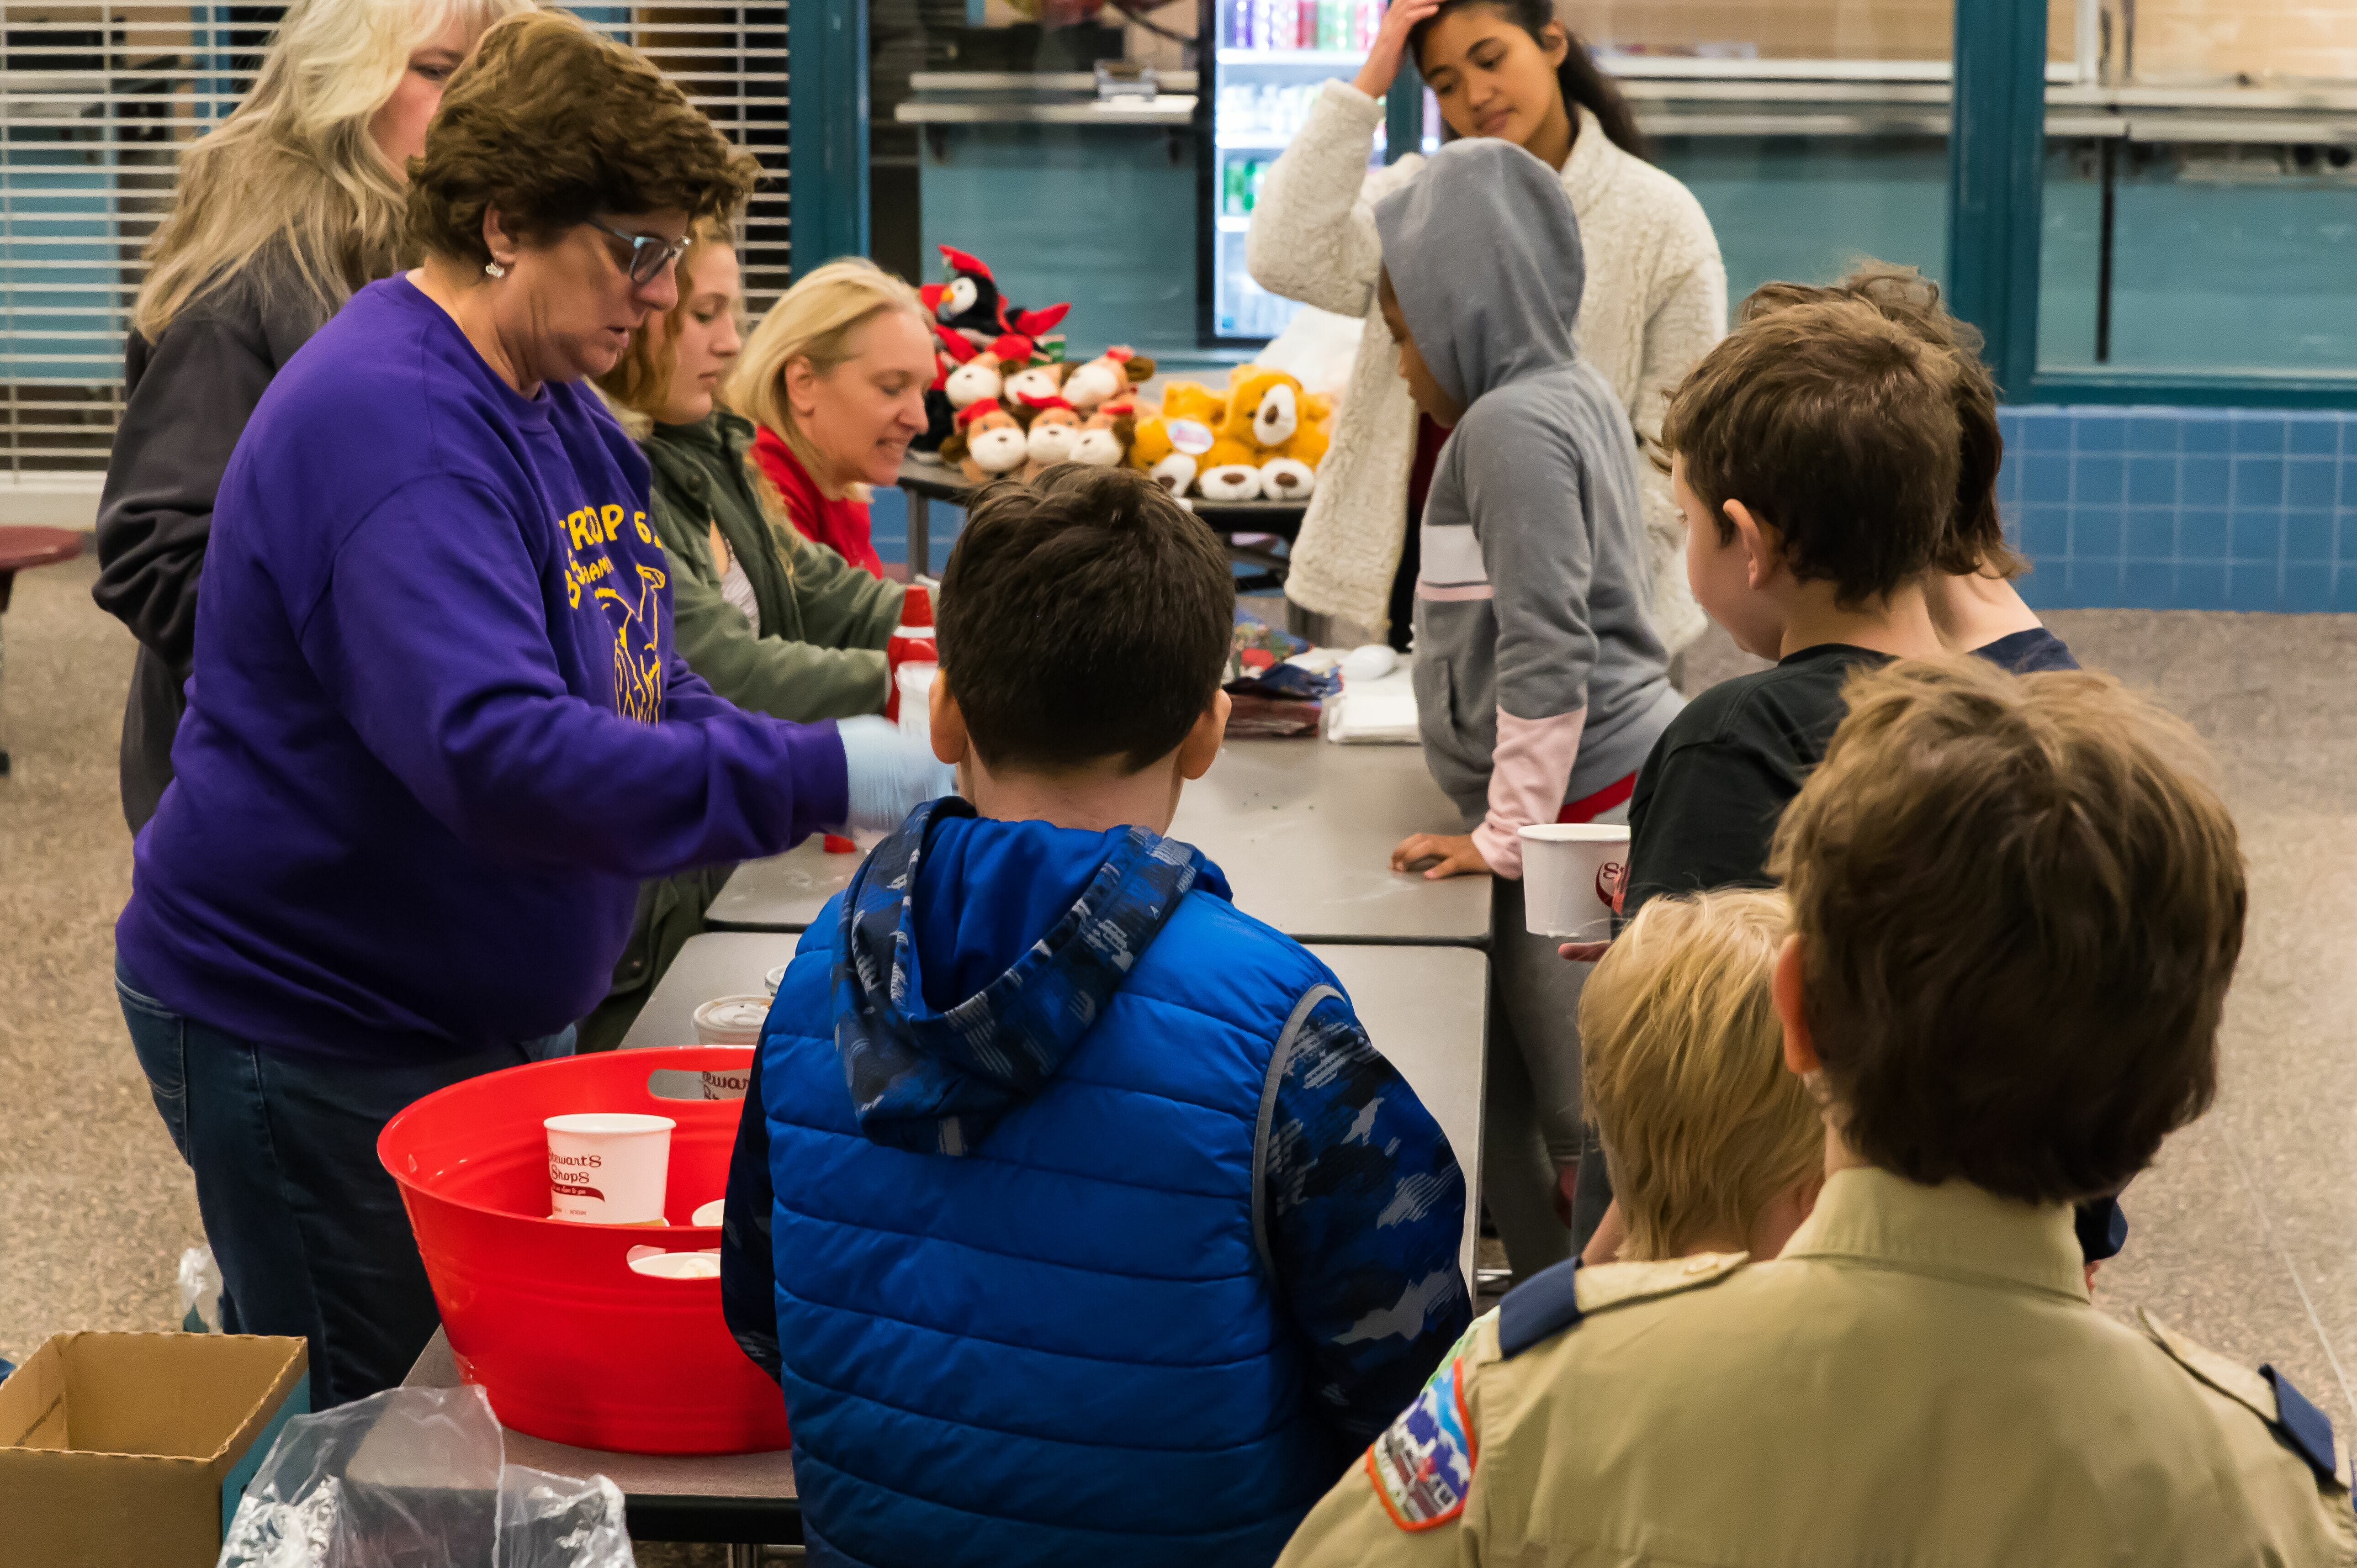 Boy scout Troop scooping ice cream.